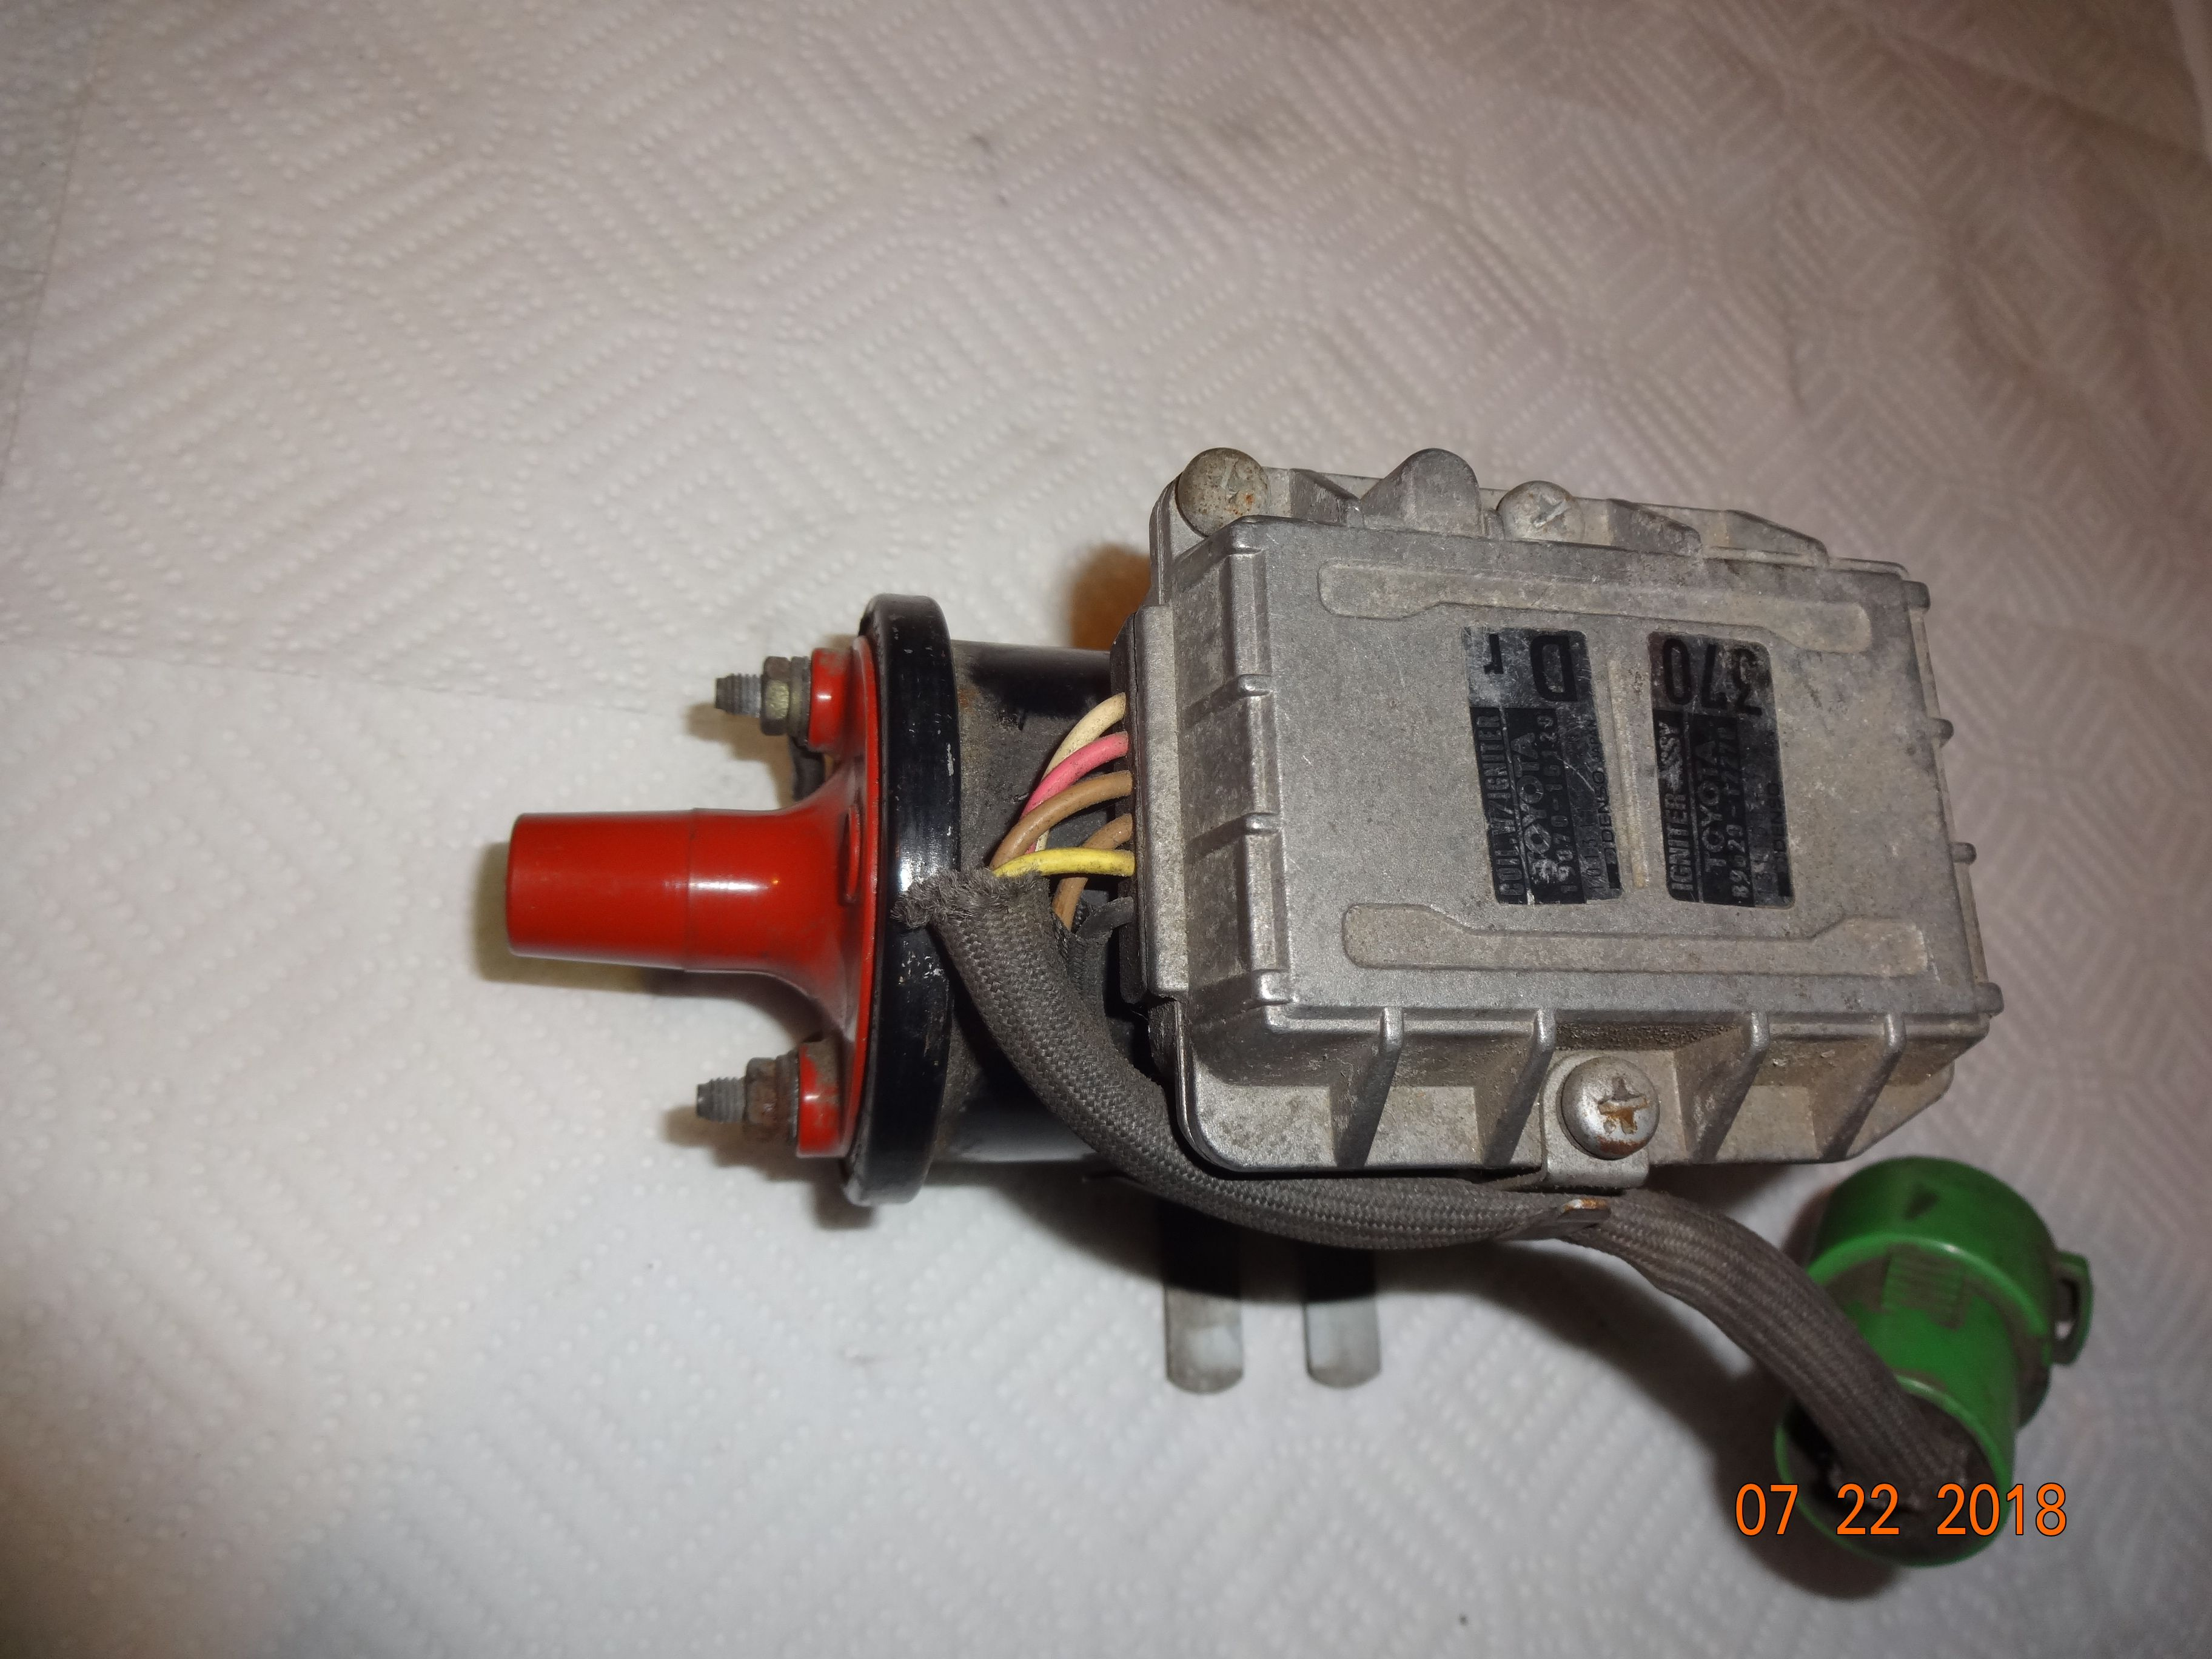 89620 12270 igniter assembly 90919 02113 ignition coil assembly toyota mr2 sc 4agze [ 3648 x 2736 Pixel ]